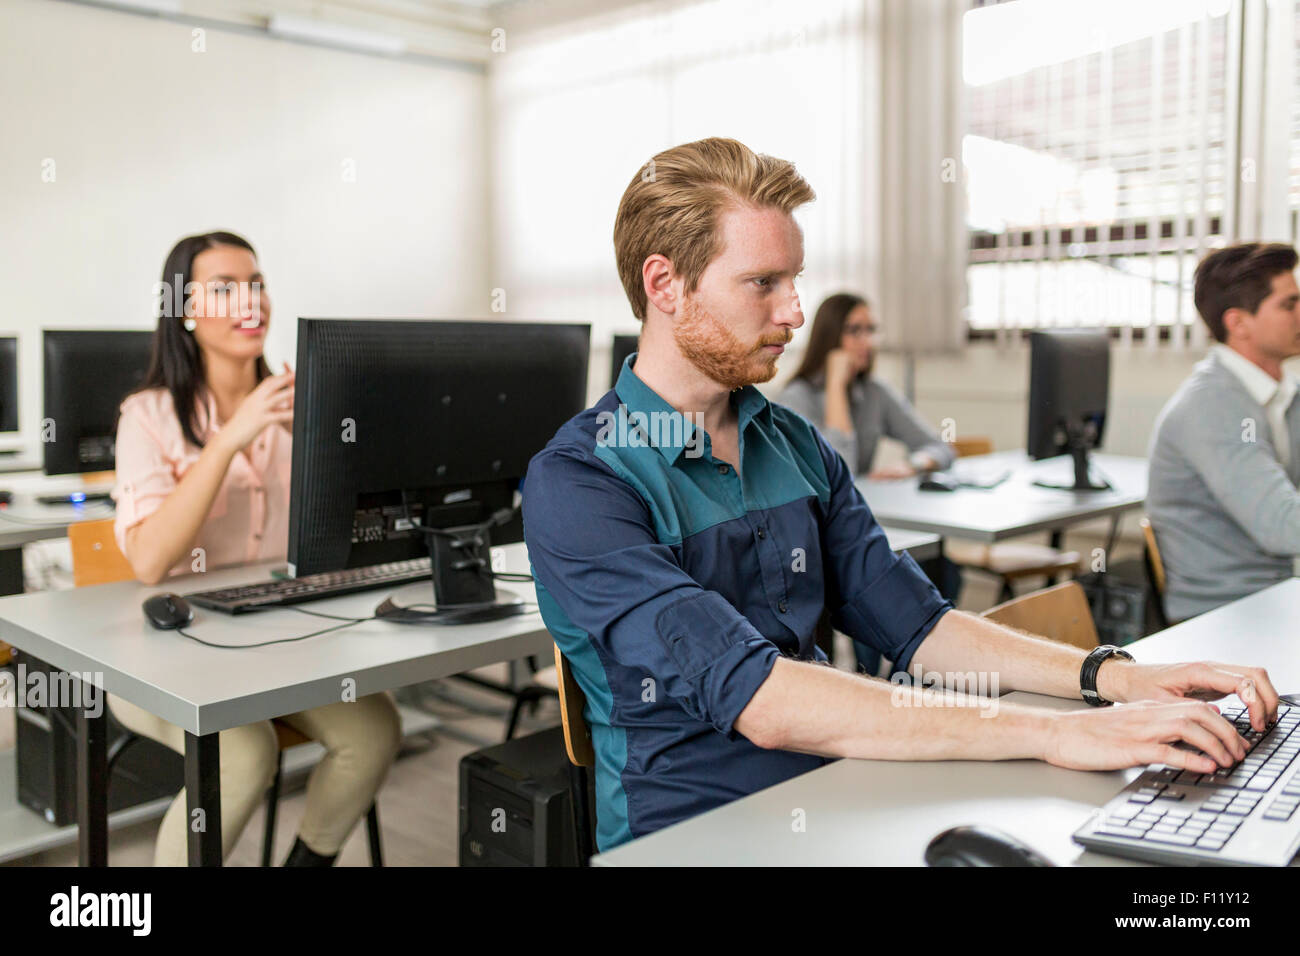 Young handsome student using computer in classroom - Stock Image